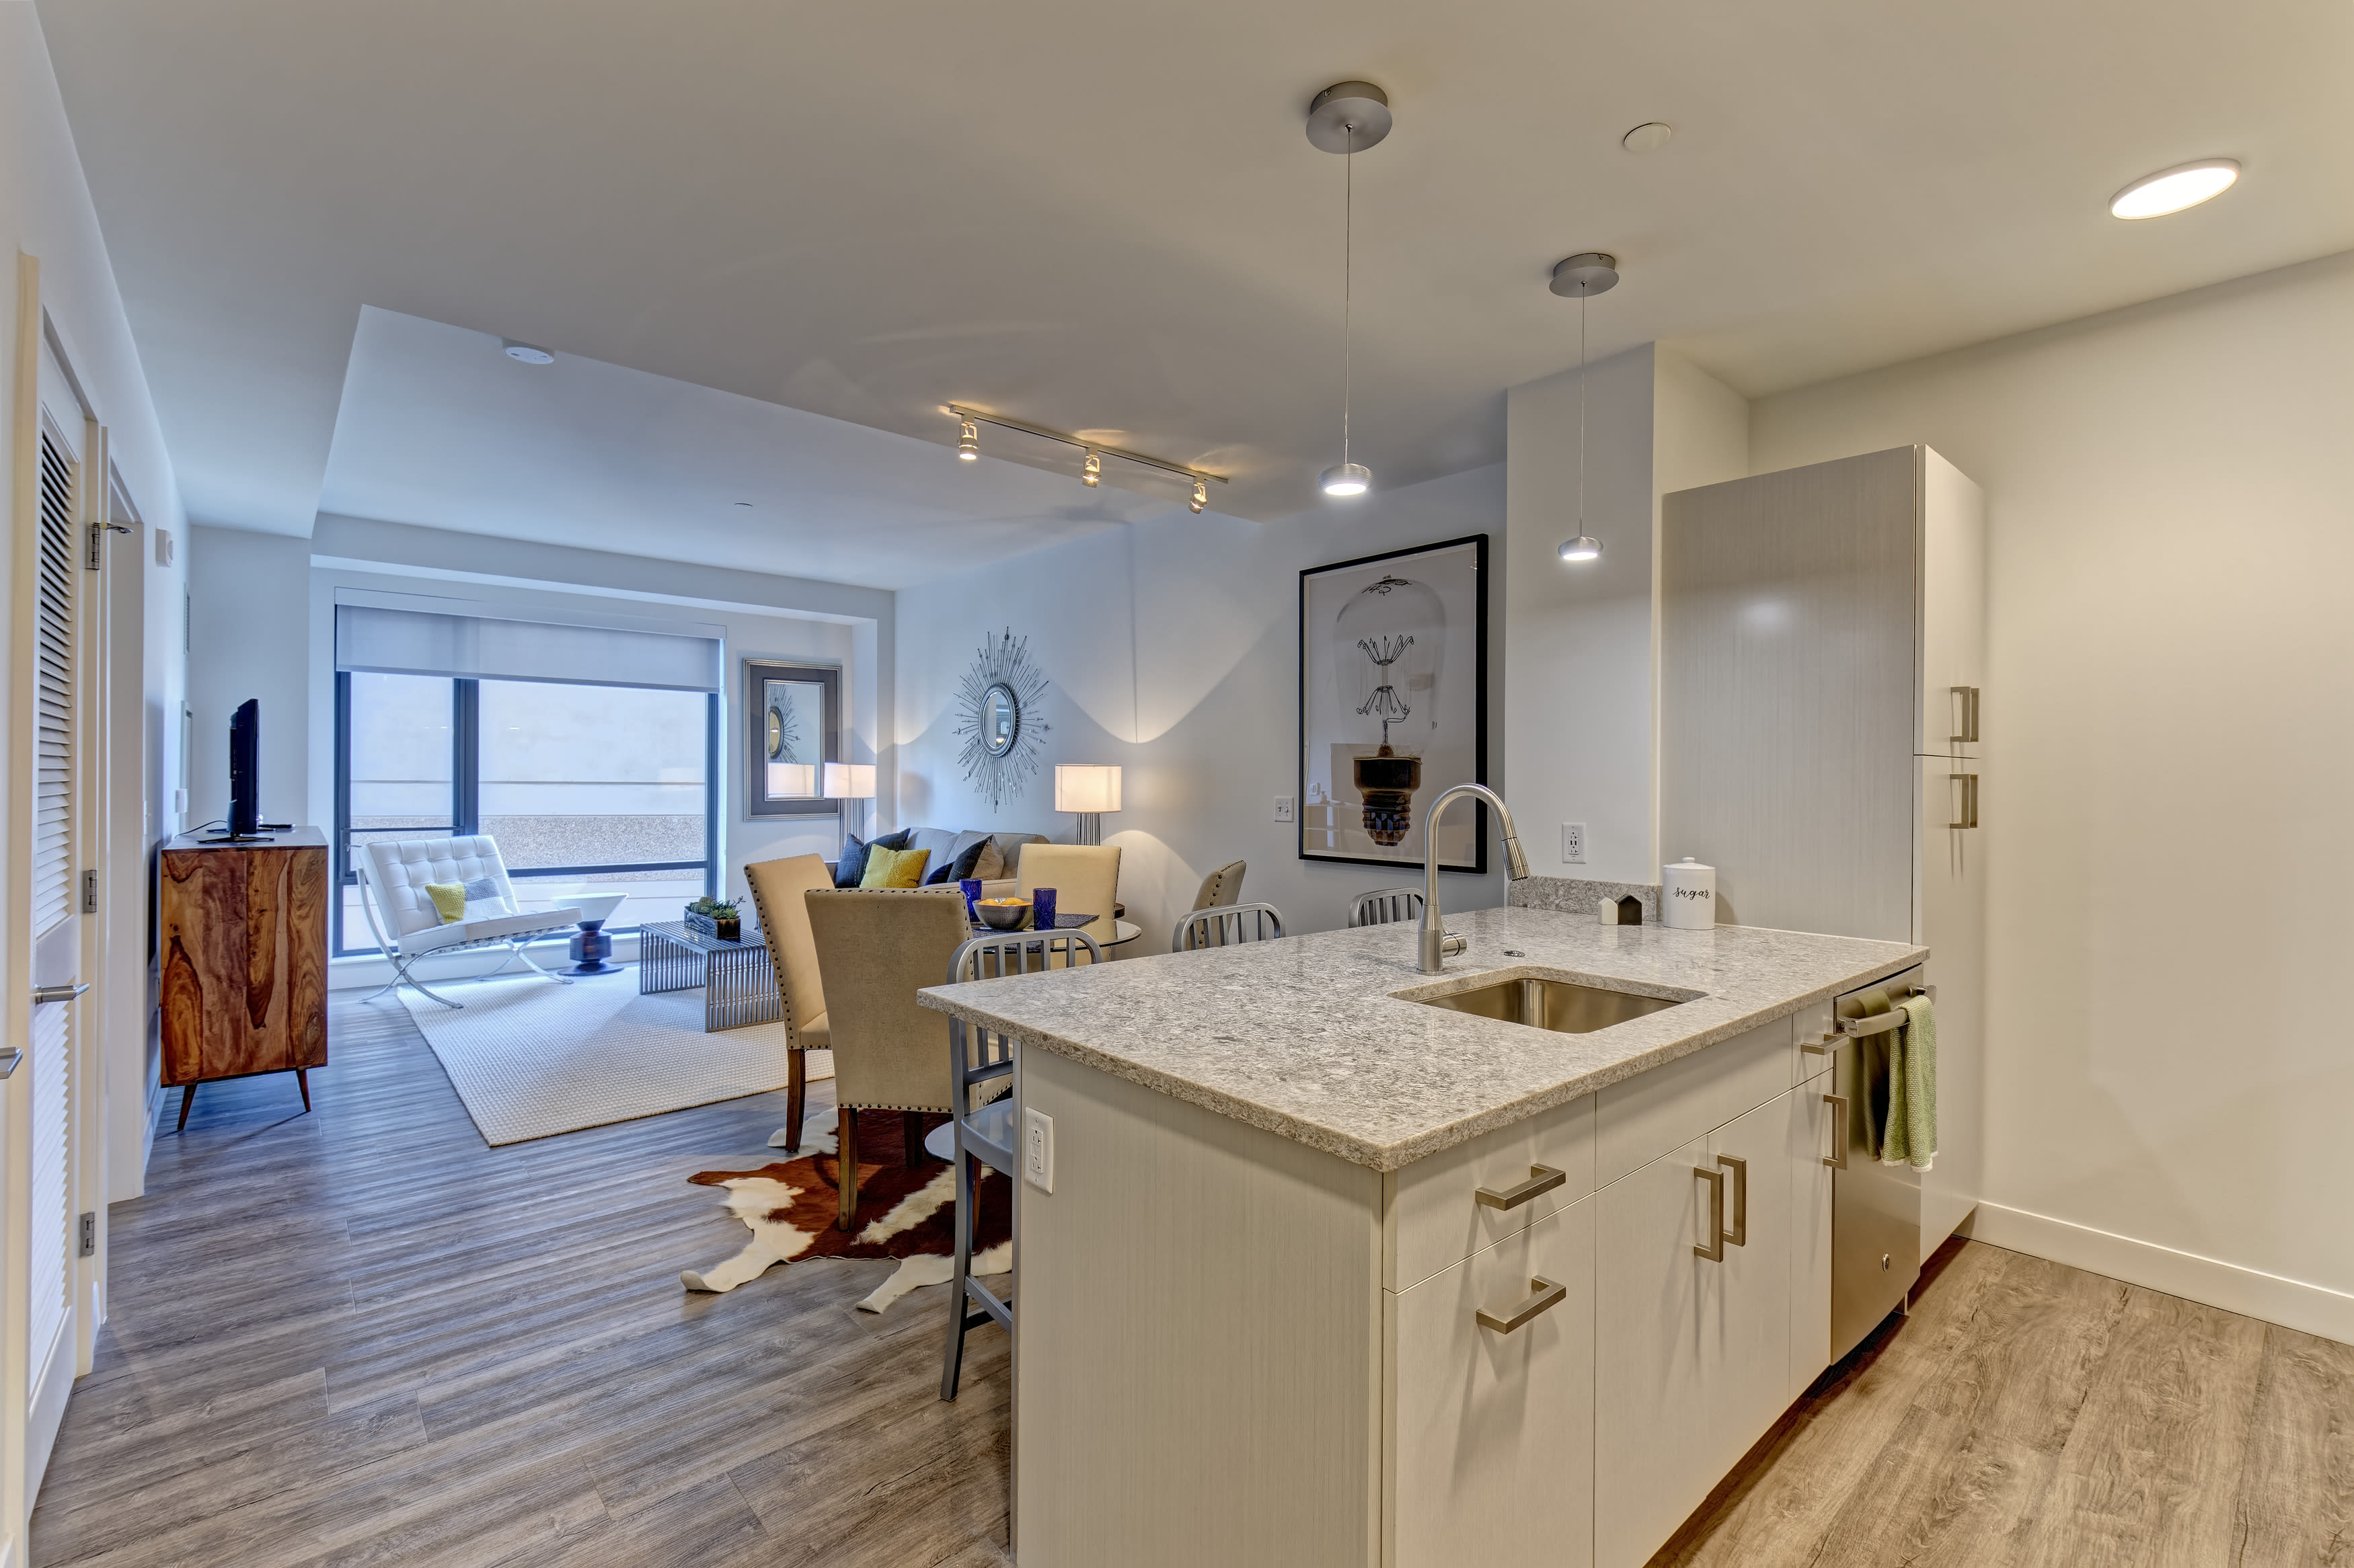 Kitchen with stainless-steel appliances and a breakfast counter at Vela on the Park in Stamford, CT